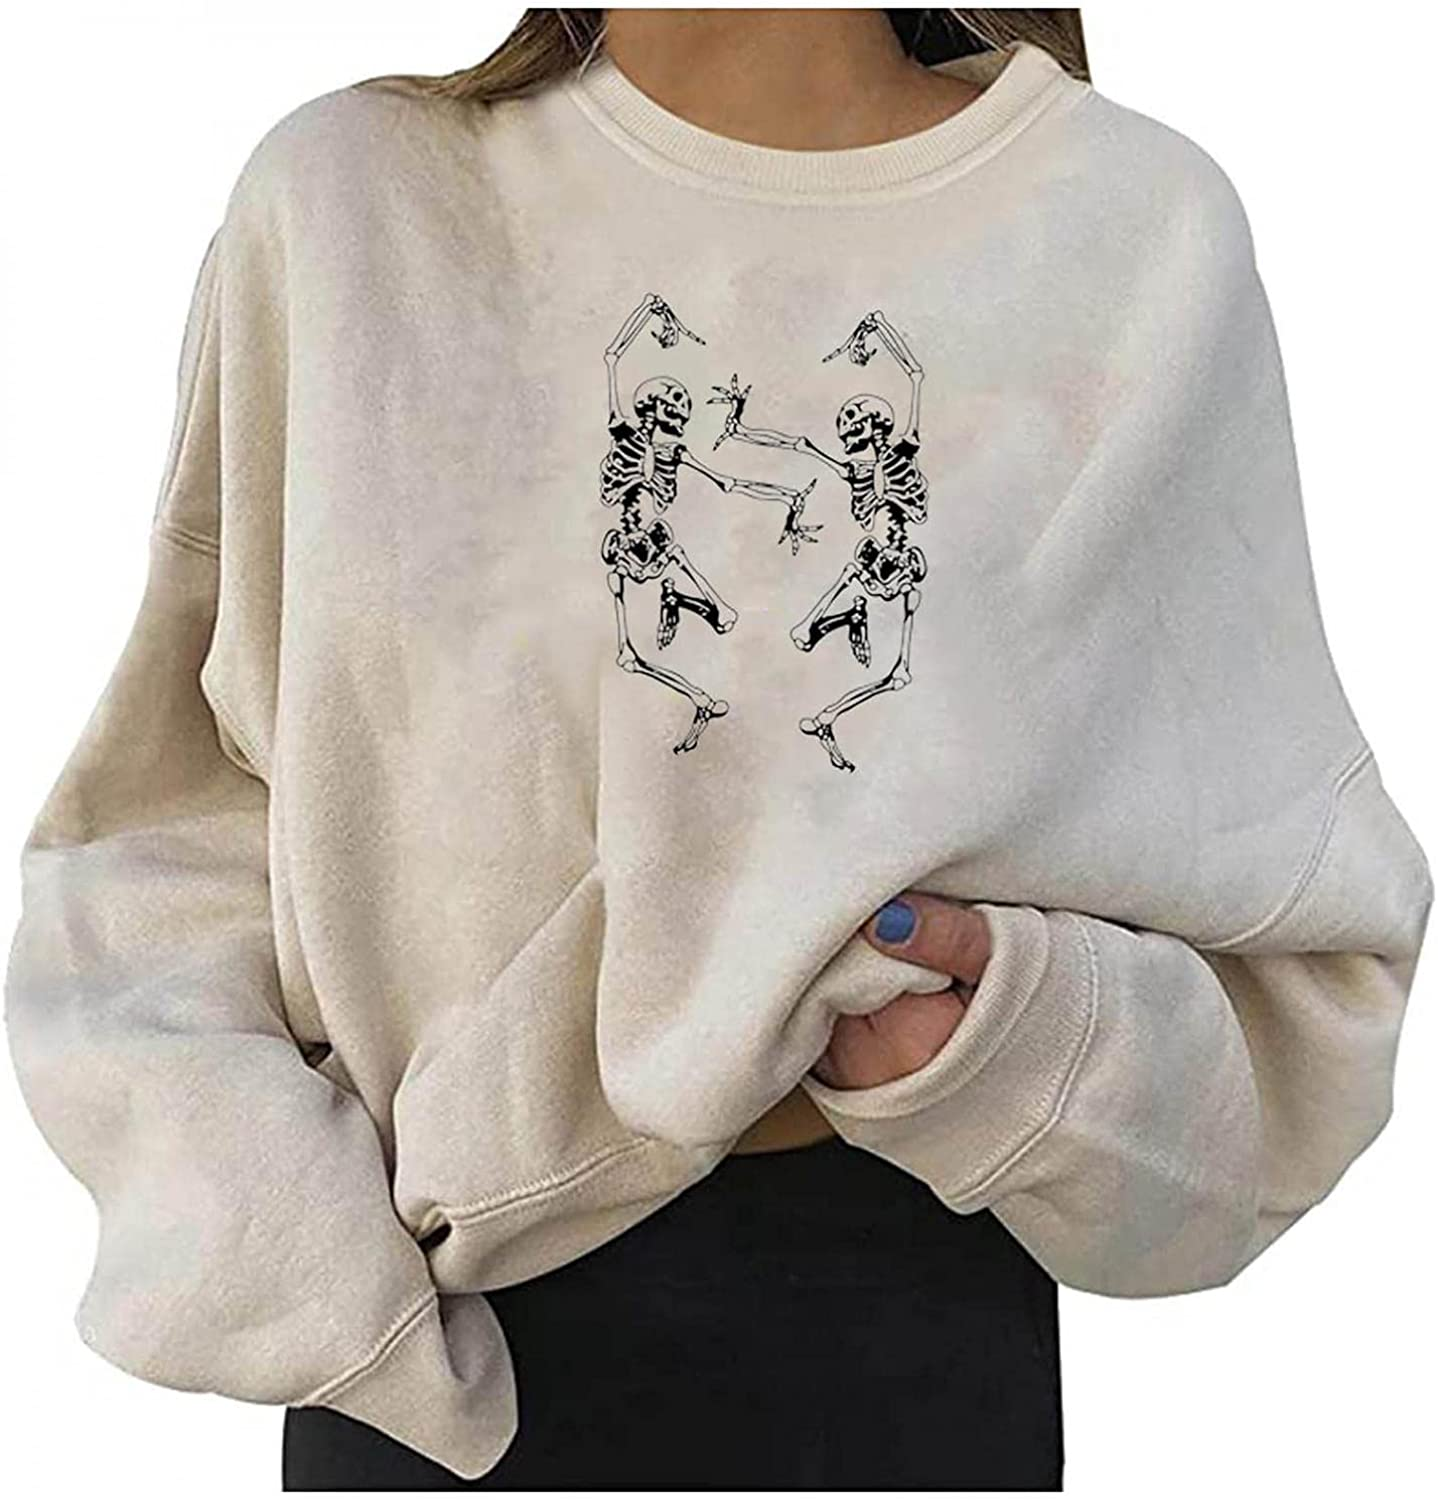 SDCSQ 2021 Women's Sporty Sweatshirt Crew Neck Long Sleeves Pullover Ribbed Cuffs Hems Sweaters Loose Casual Tops